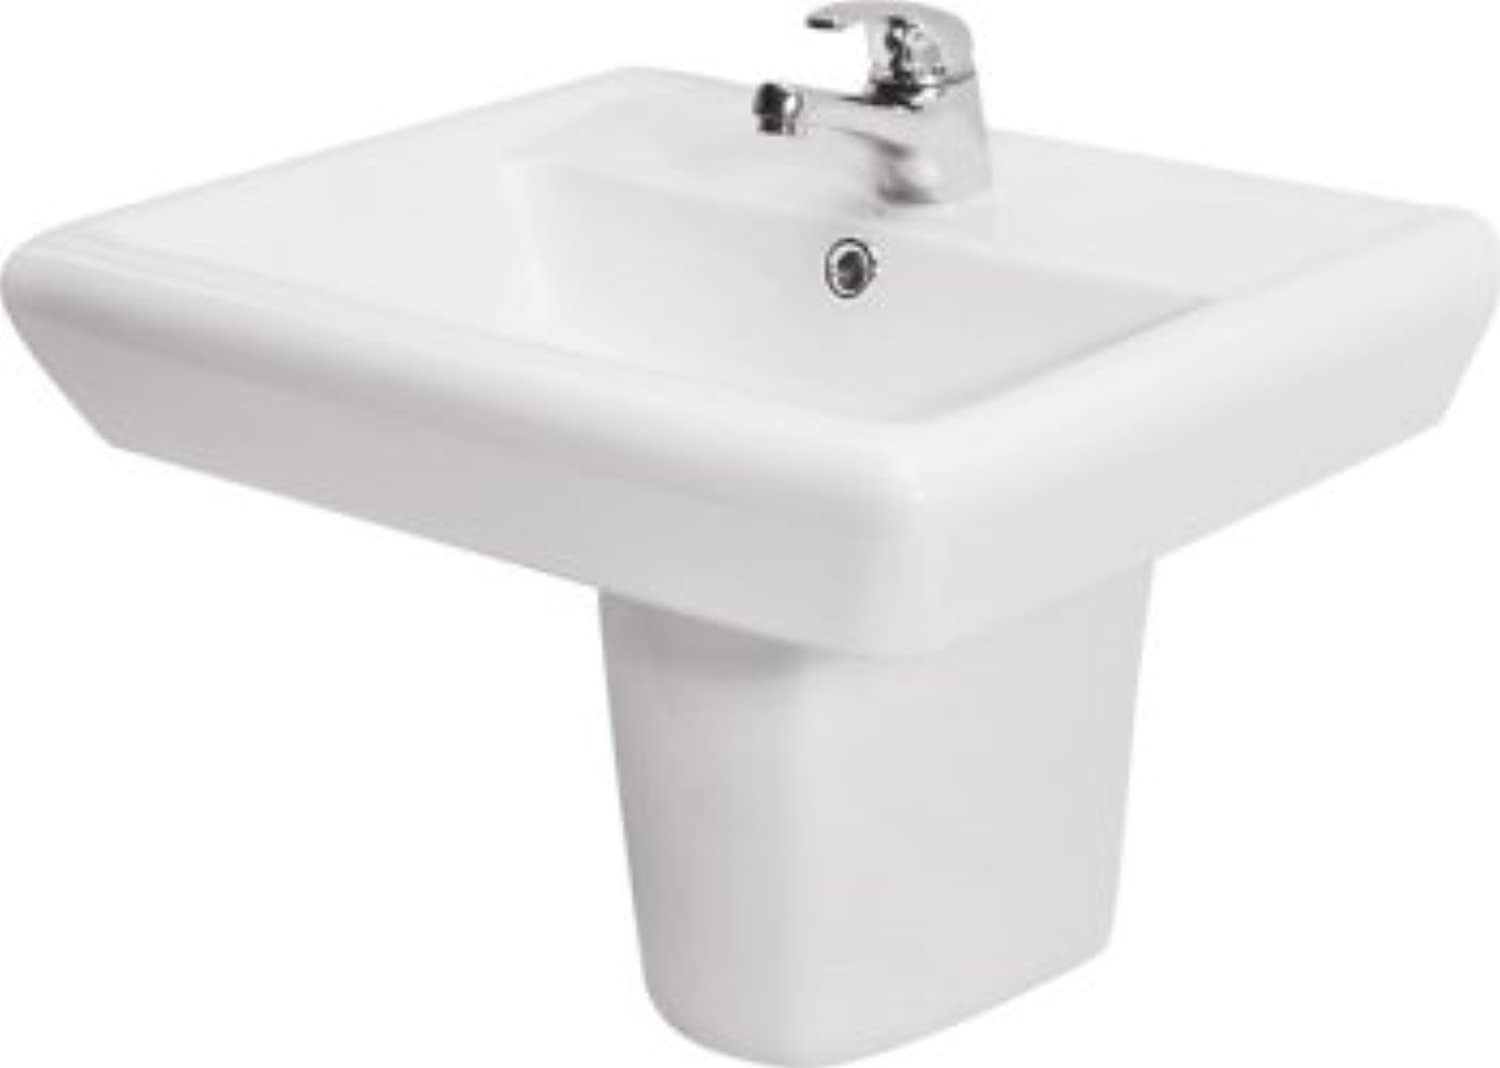 DOMINO ECO IRYDA 60 B HL BATHROOM SINK